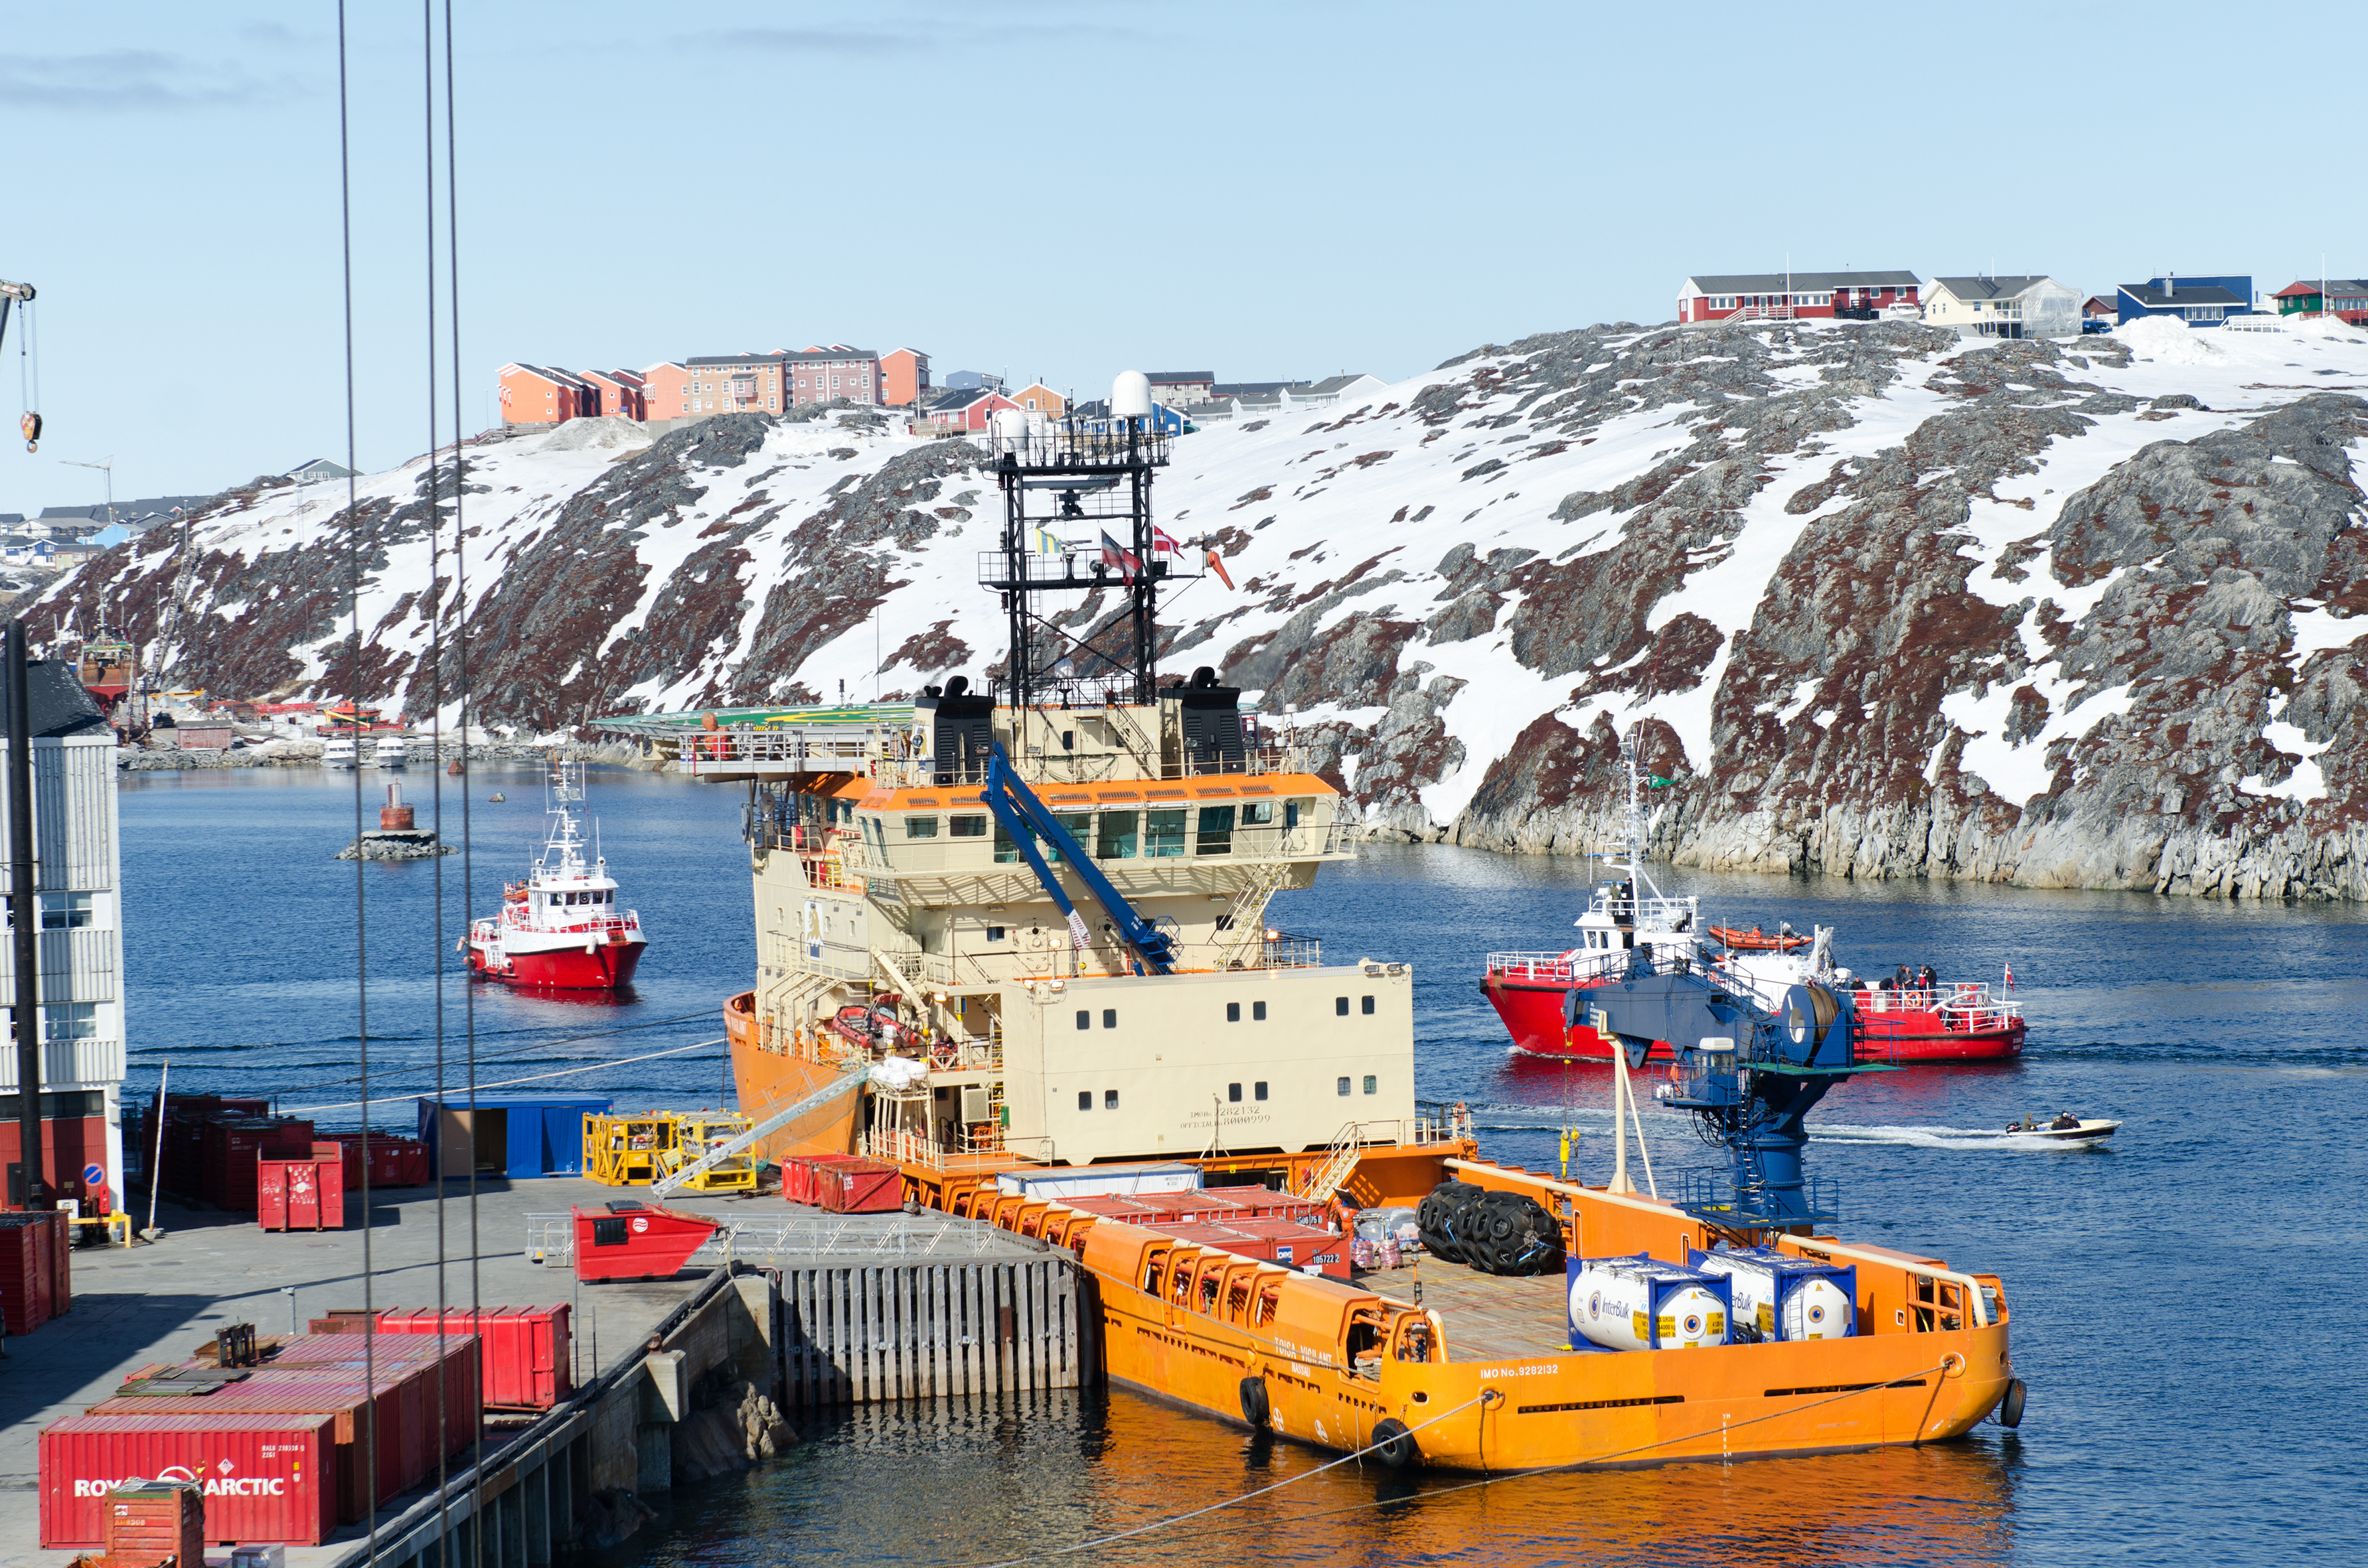 A Cairn Energy vessel in Greenland during the 2010 exploration season. At the time, the firm's initial promising results led many to believe a discovery was imminent. (Cairn Energy)